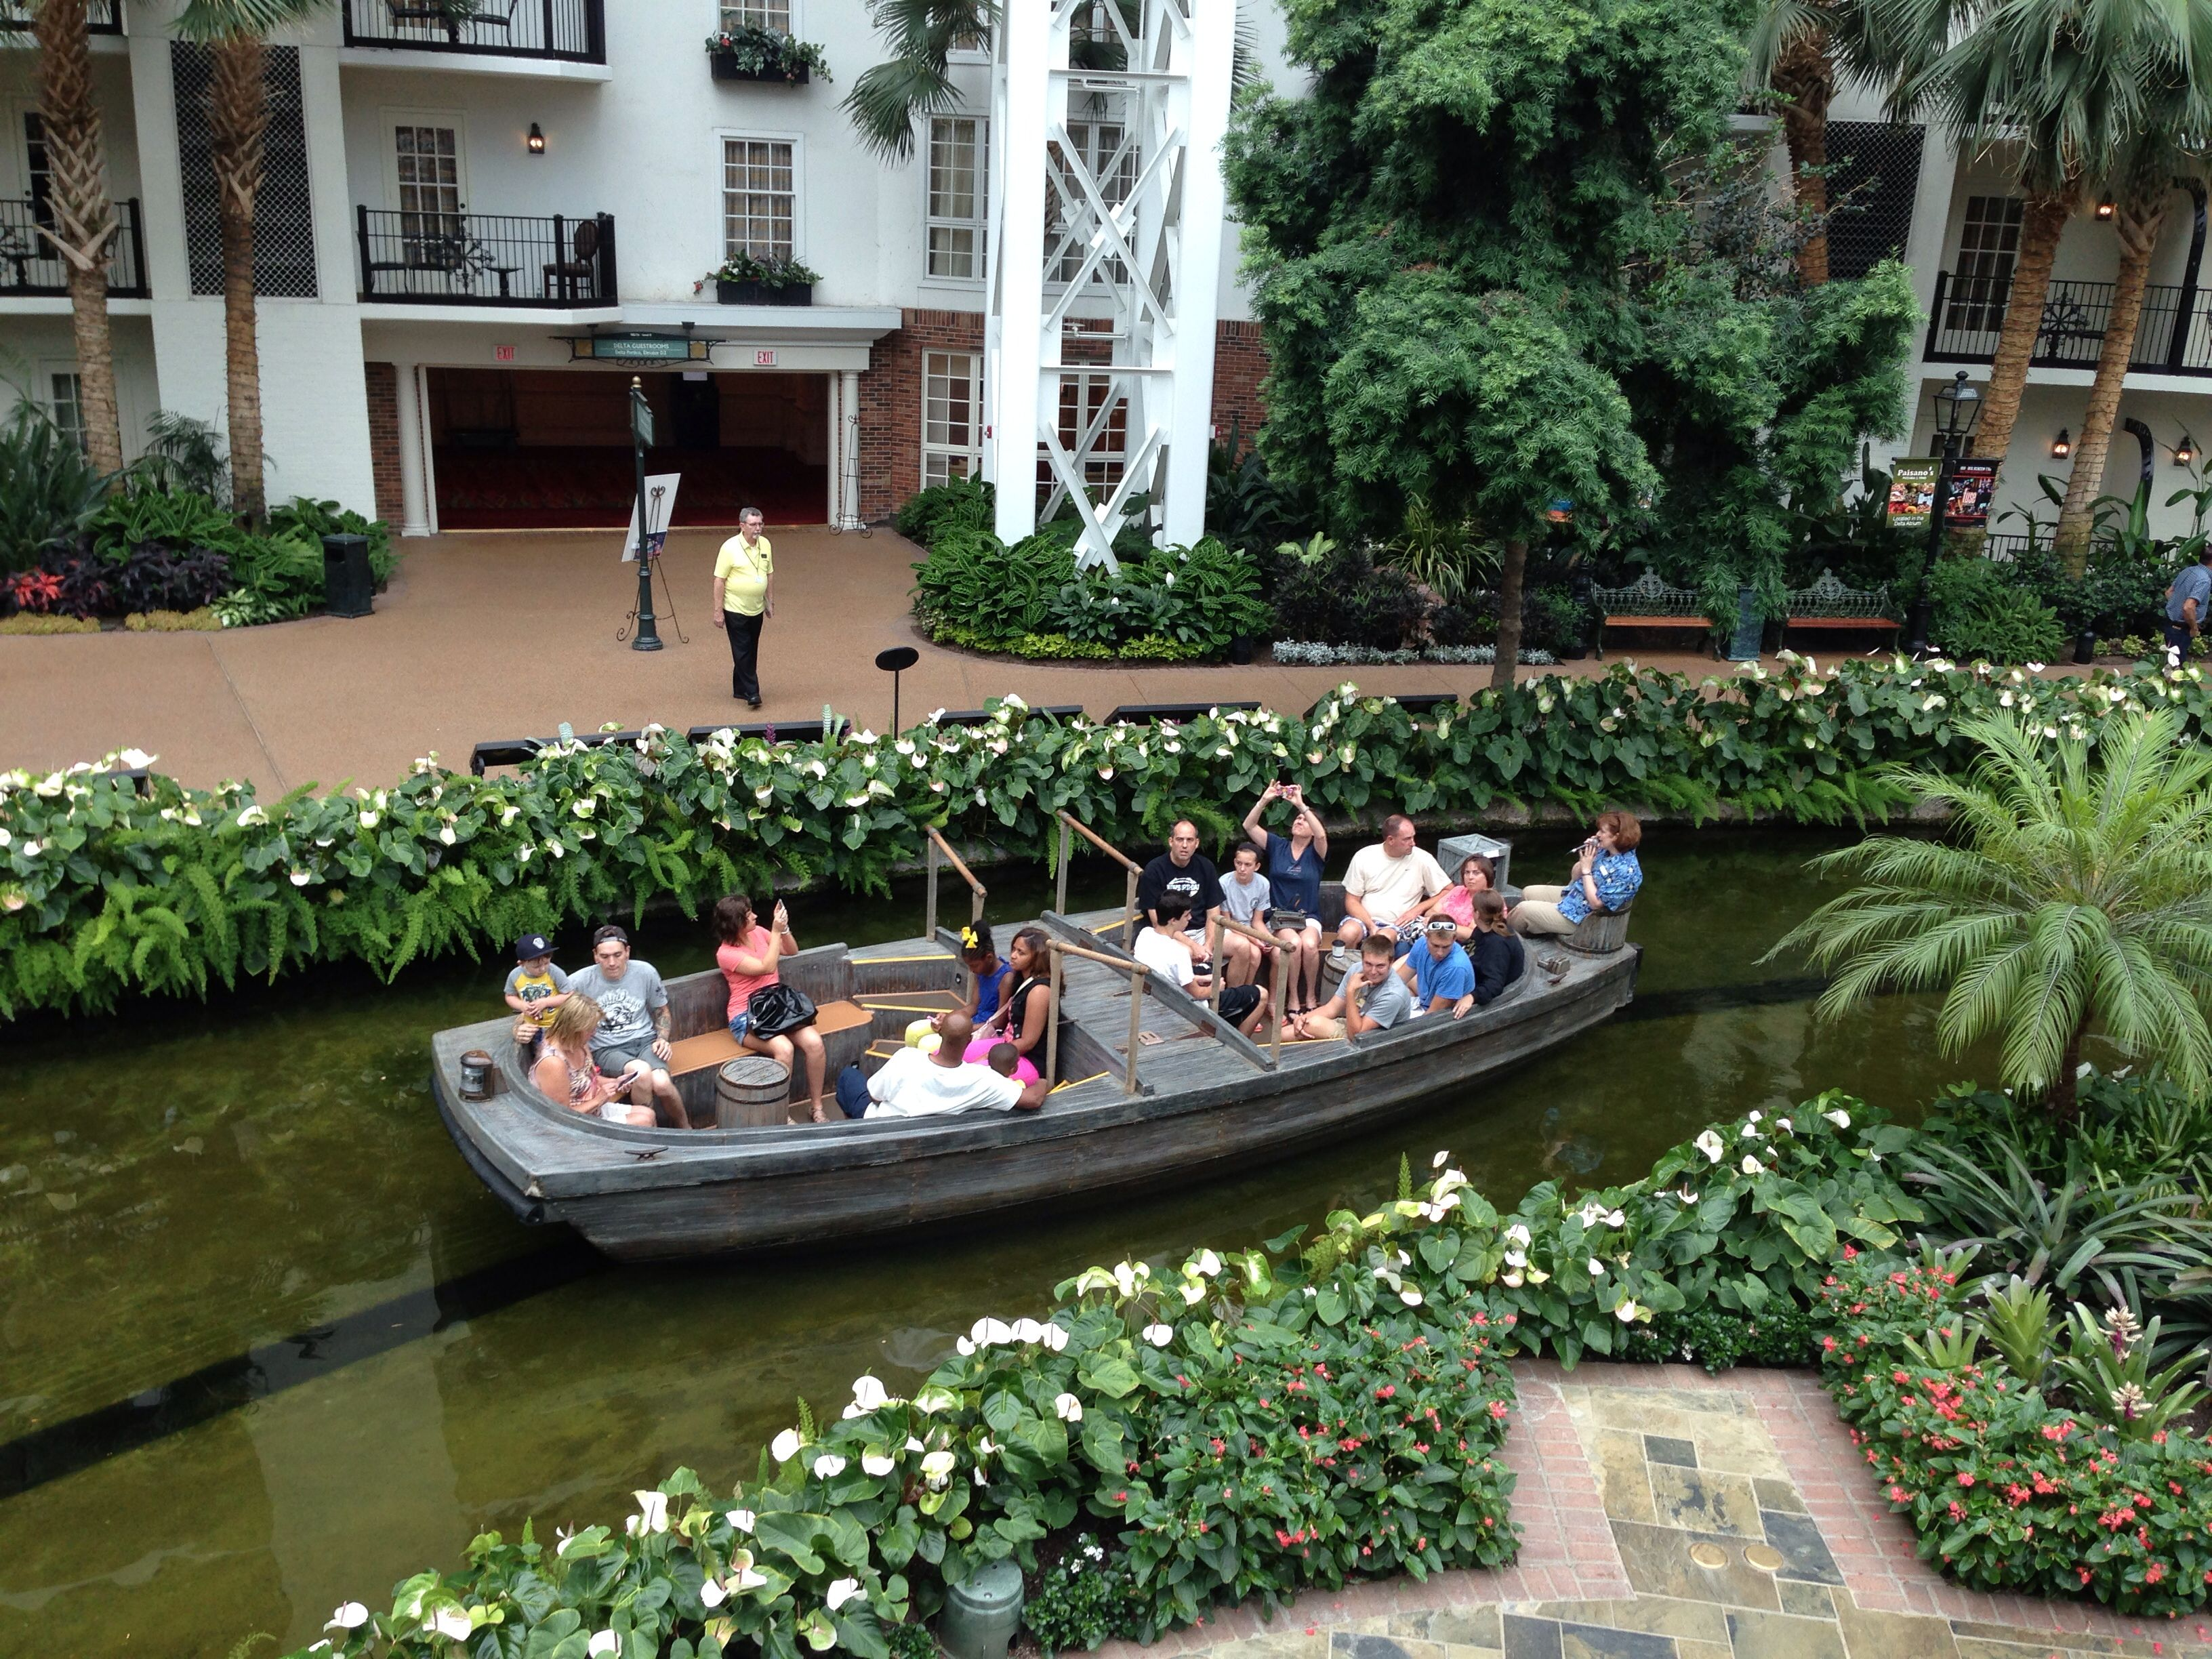 Boat Ride Gaylord Hotel In Nashville Tennesee